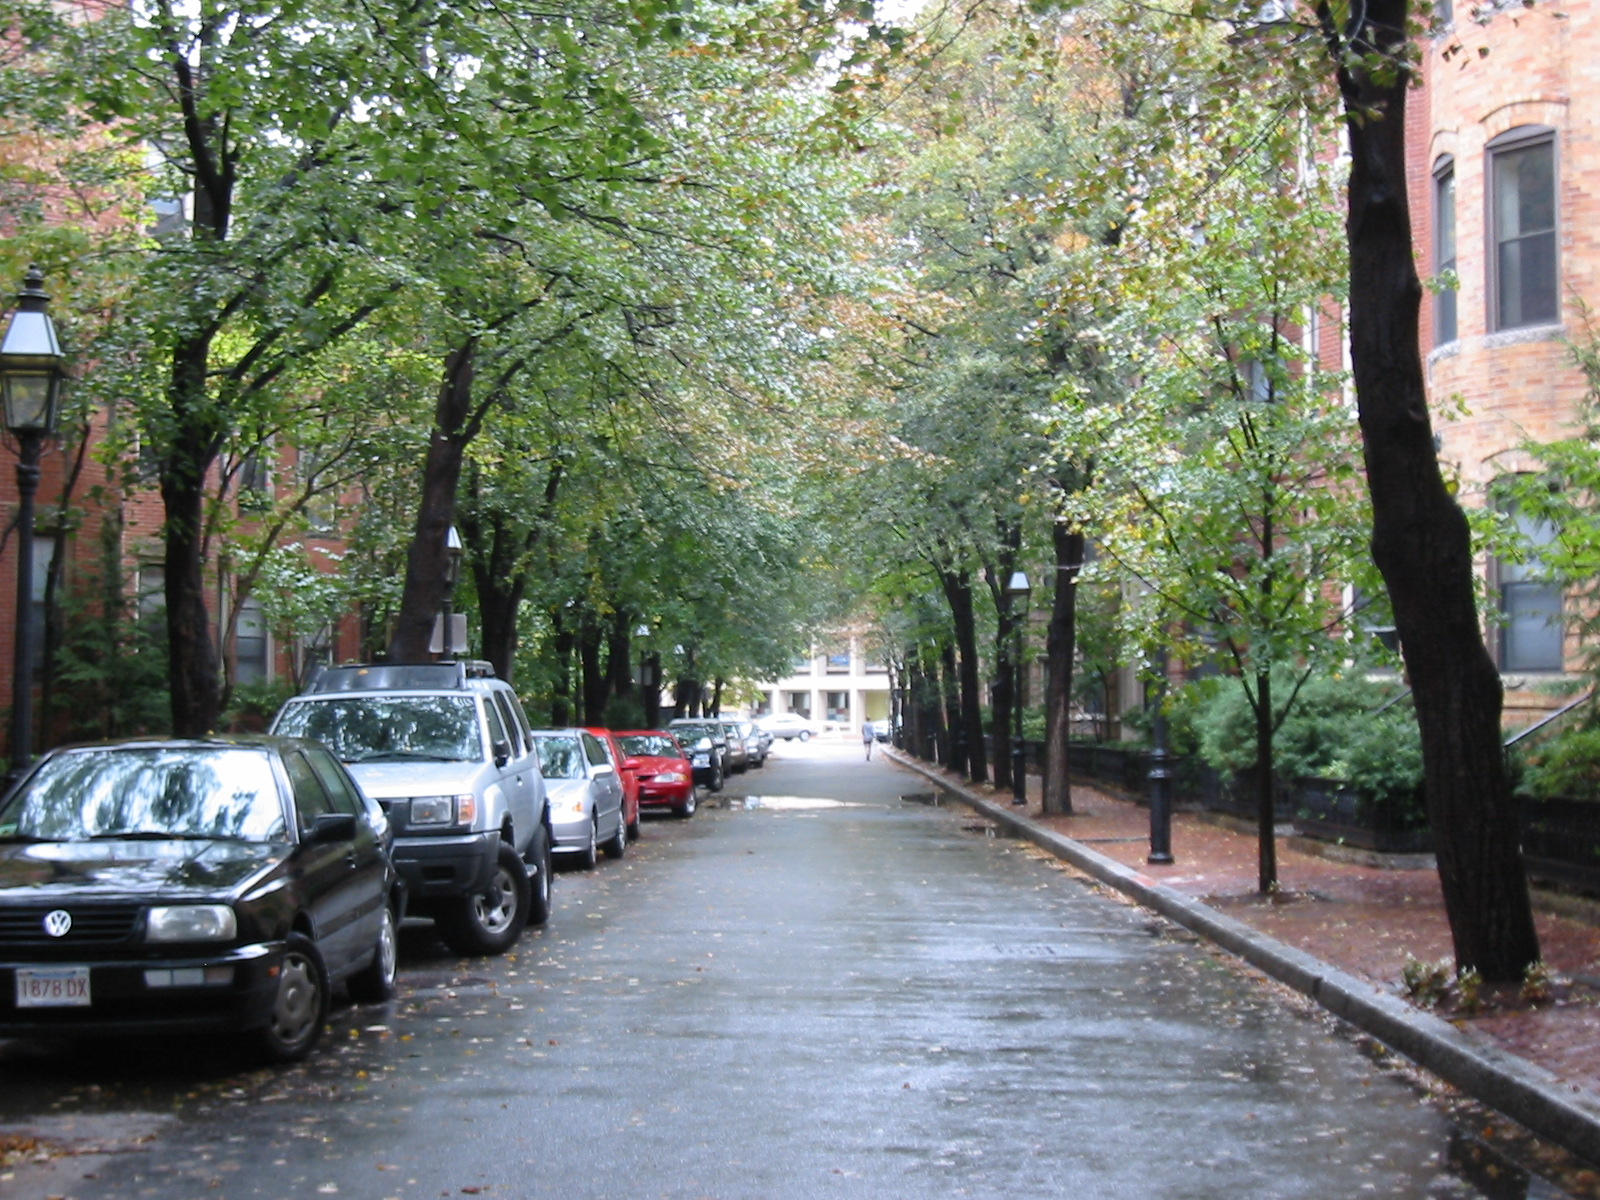 city street lined with trees